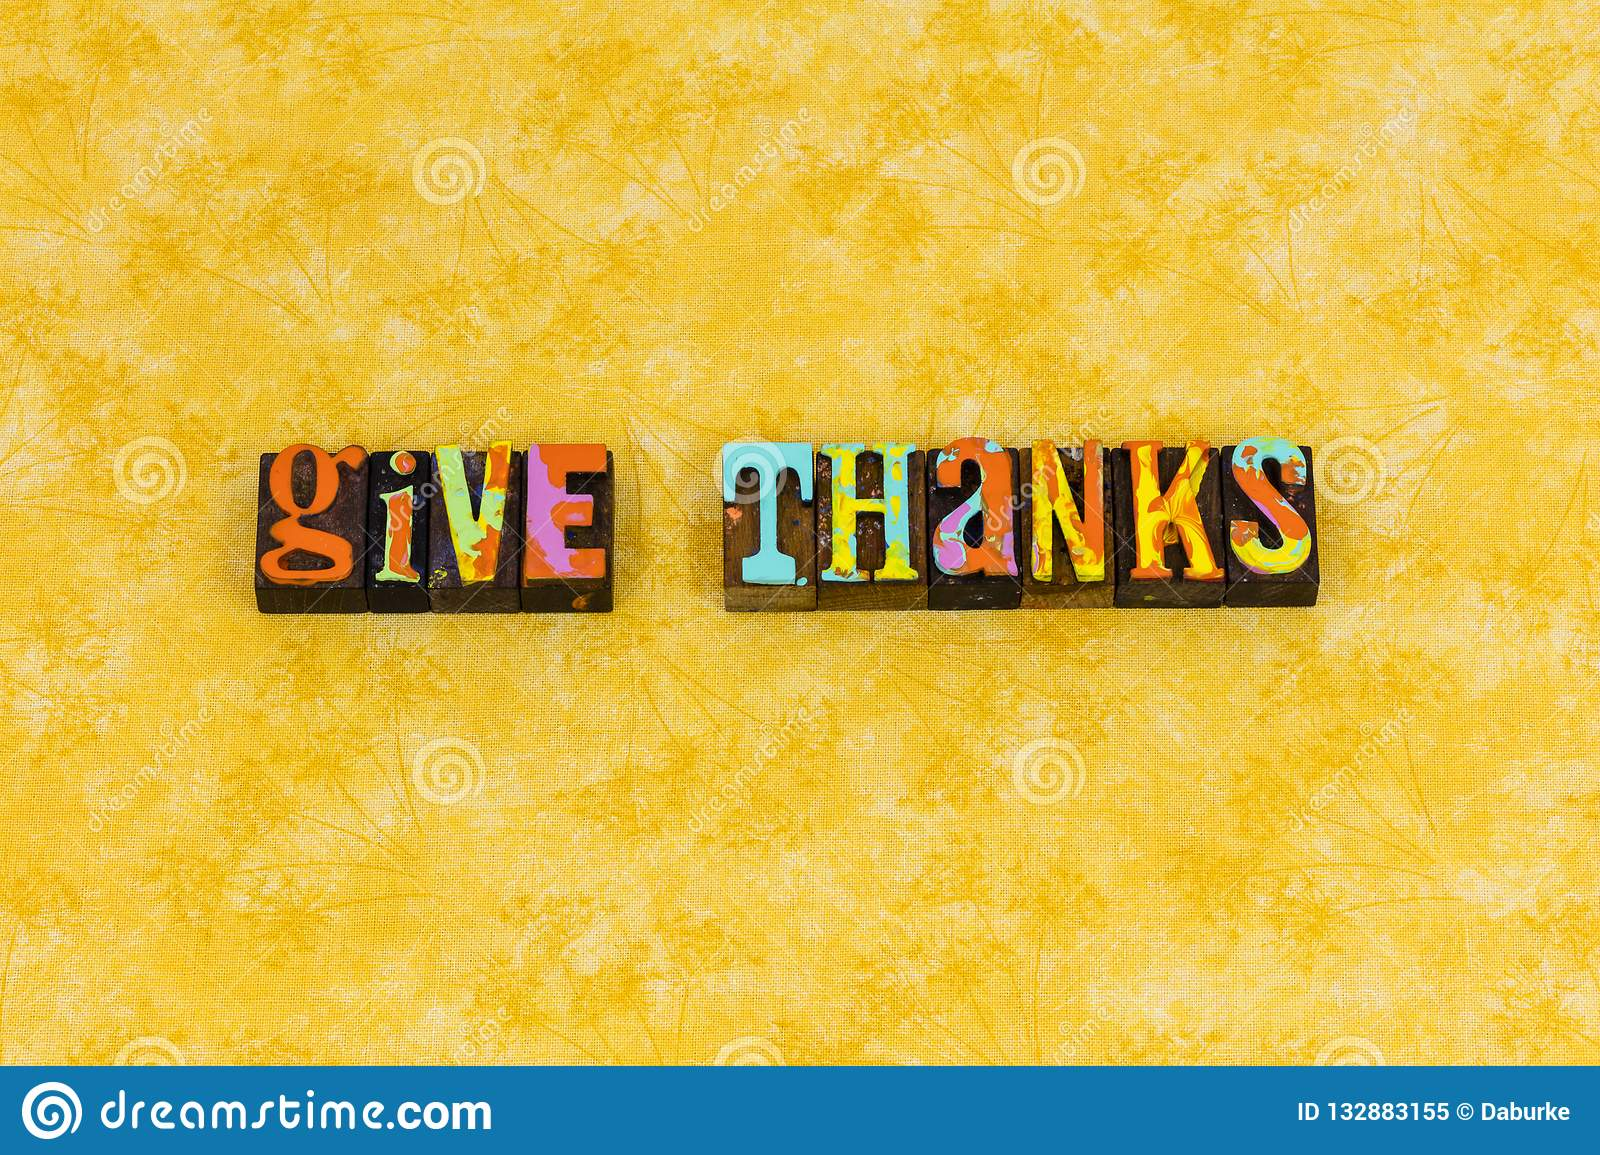 Give thanks thankful grateful heart